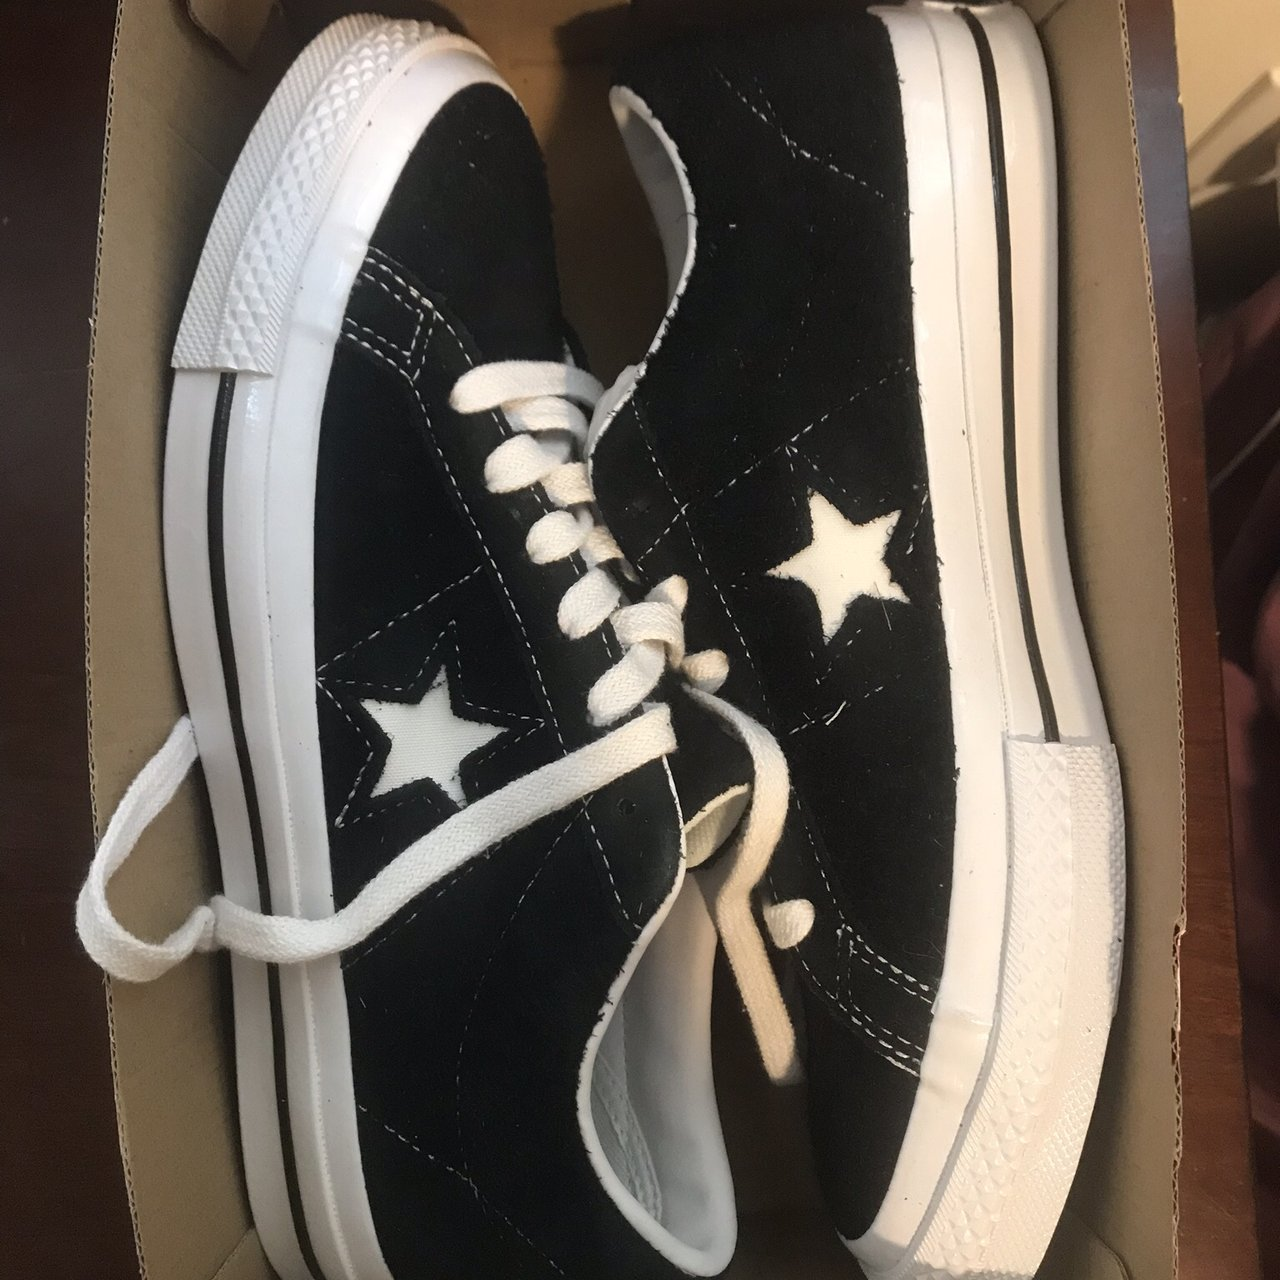 fed280069a2 brand new in box never worn one star black converse size - Depop